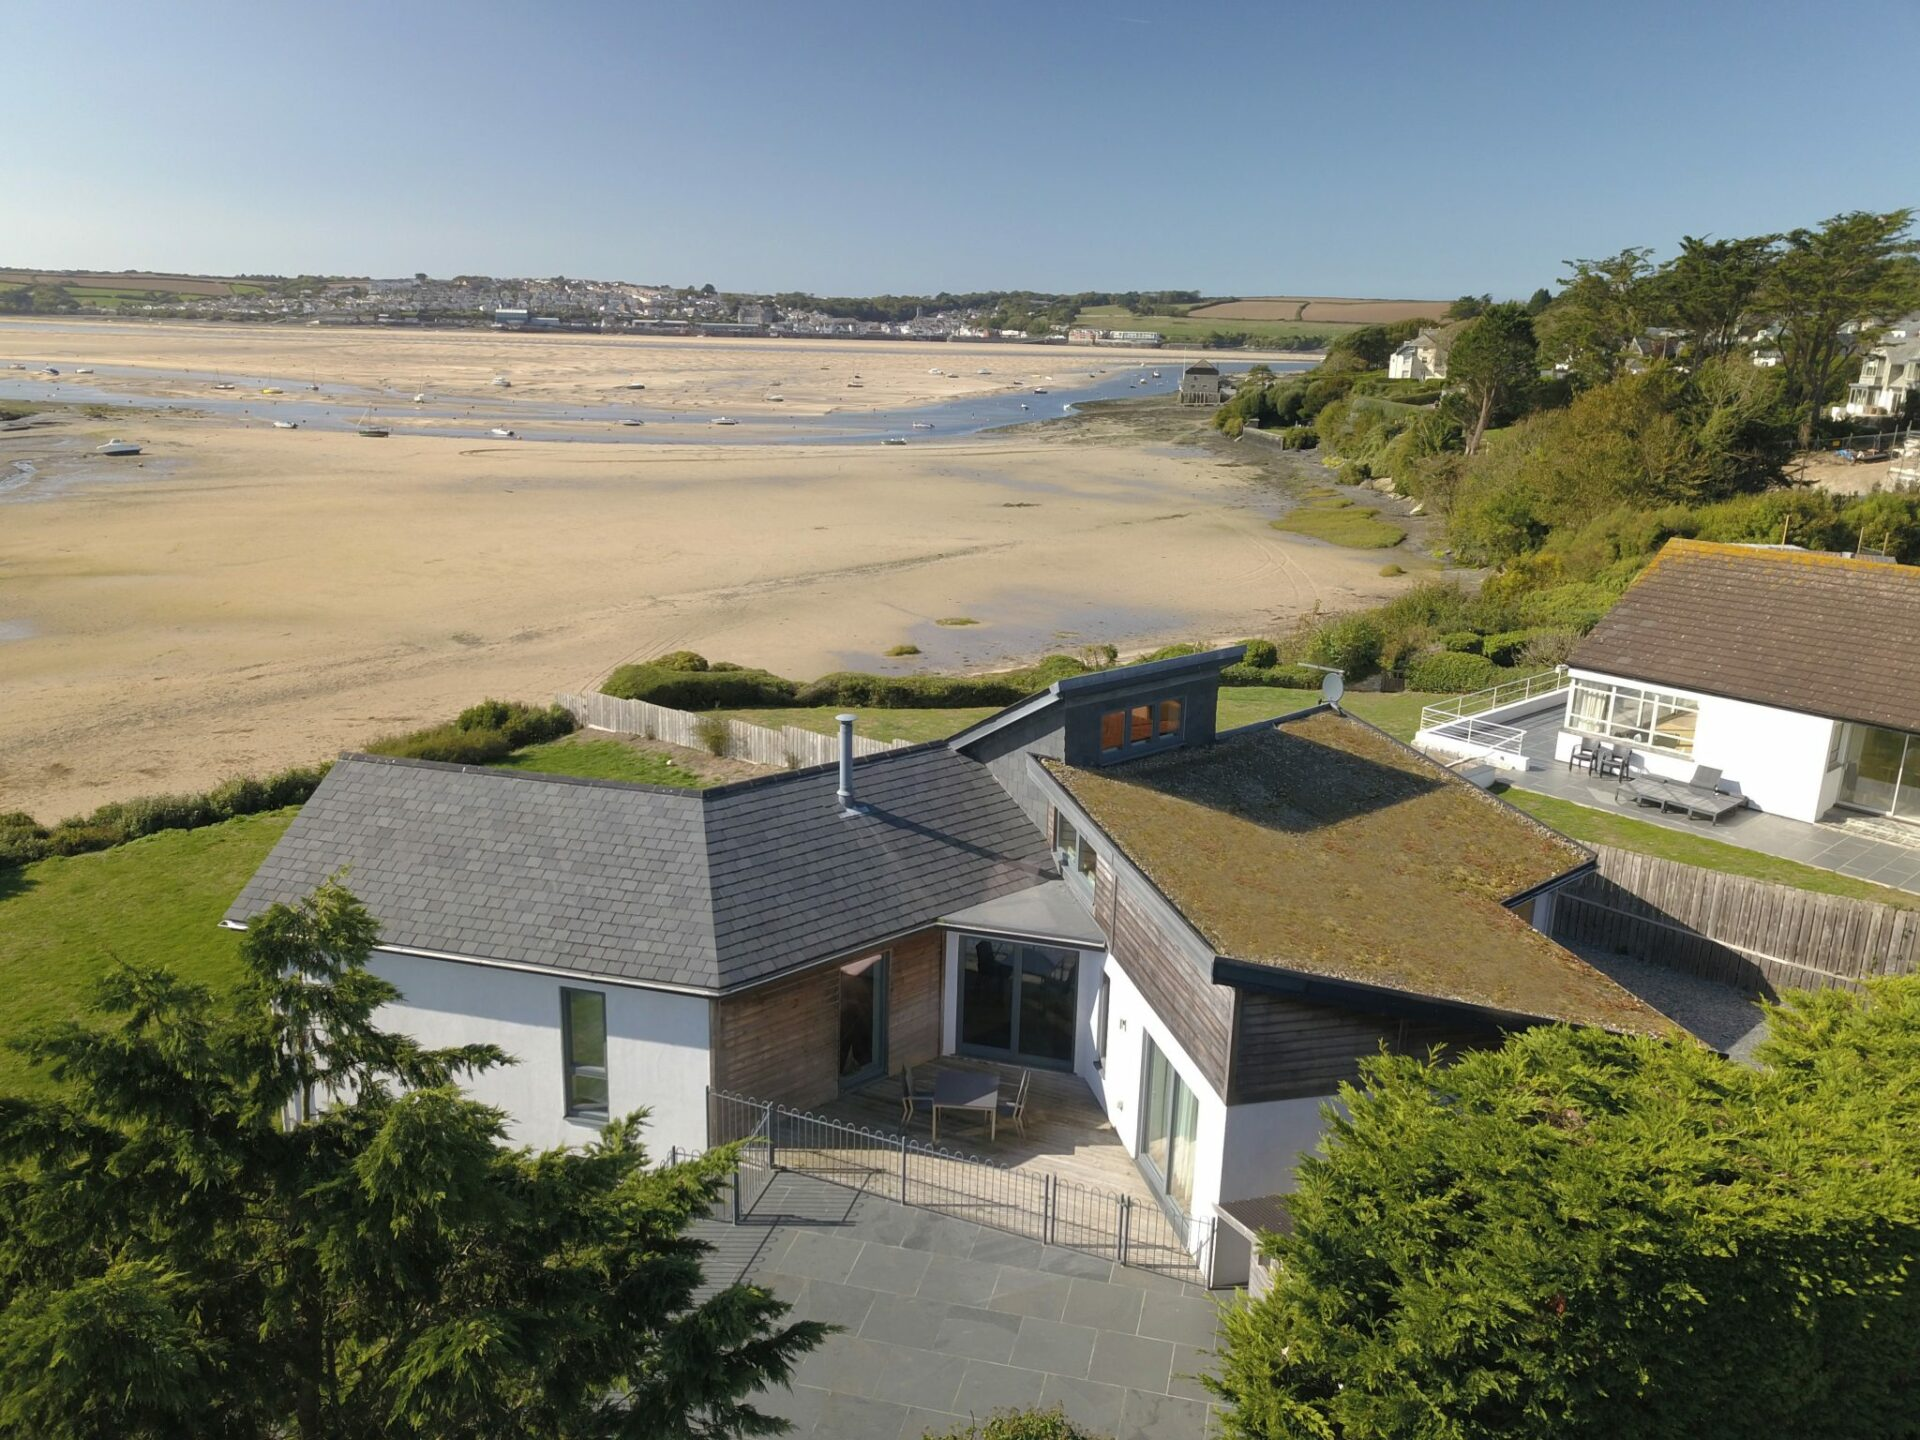 Rock cornwall new build design by ARCO2